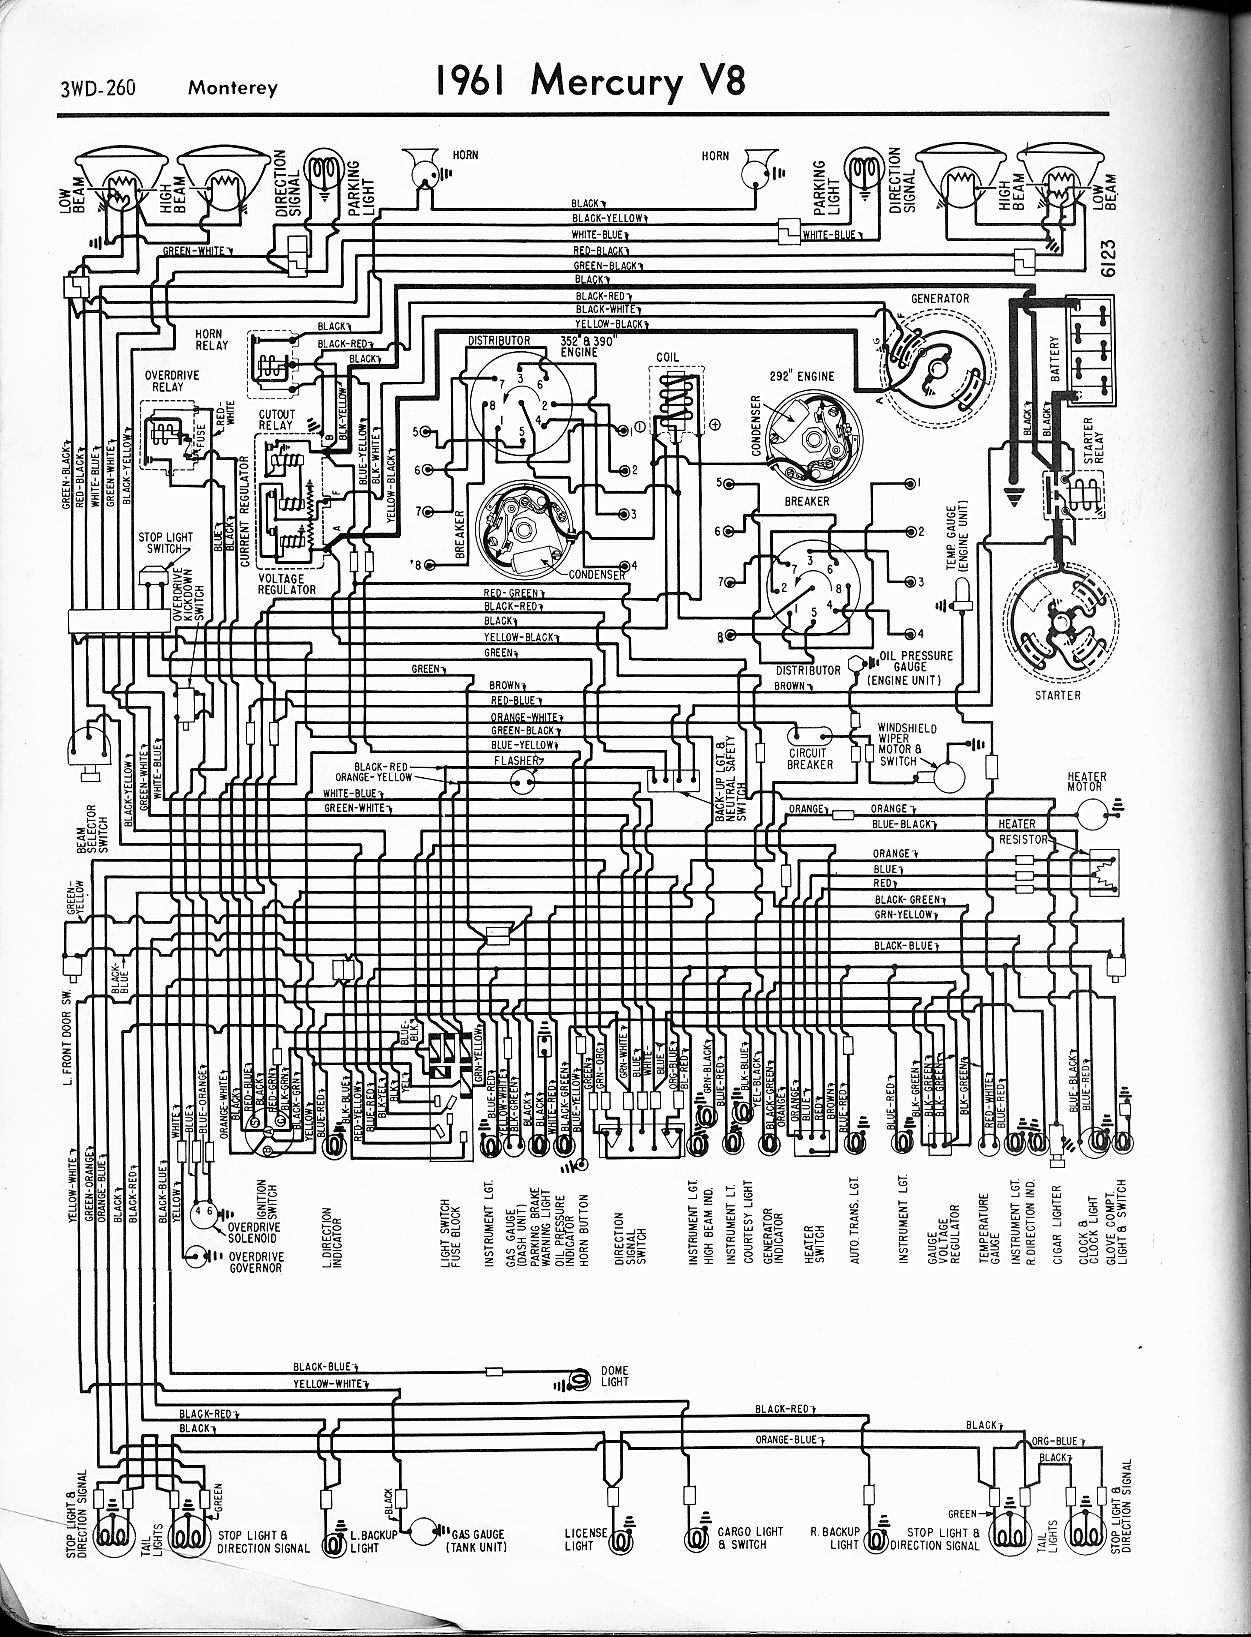 Mercury Wiring Diagrams The Old Car Manual Project 50 Mercury Wiring Harness  Diagram 56 Mercury Wiring Diagram